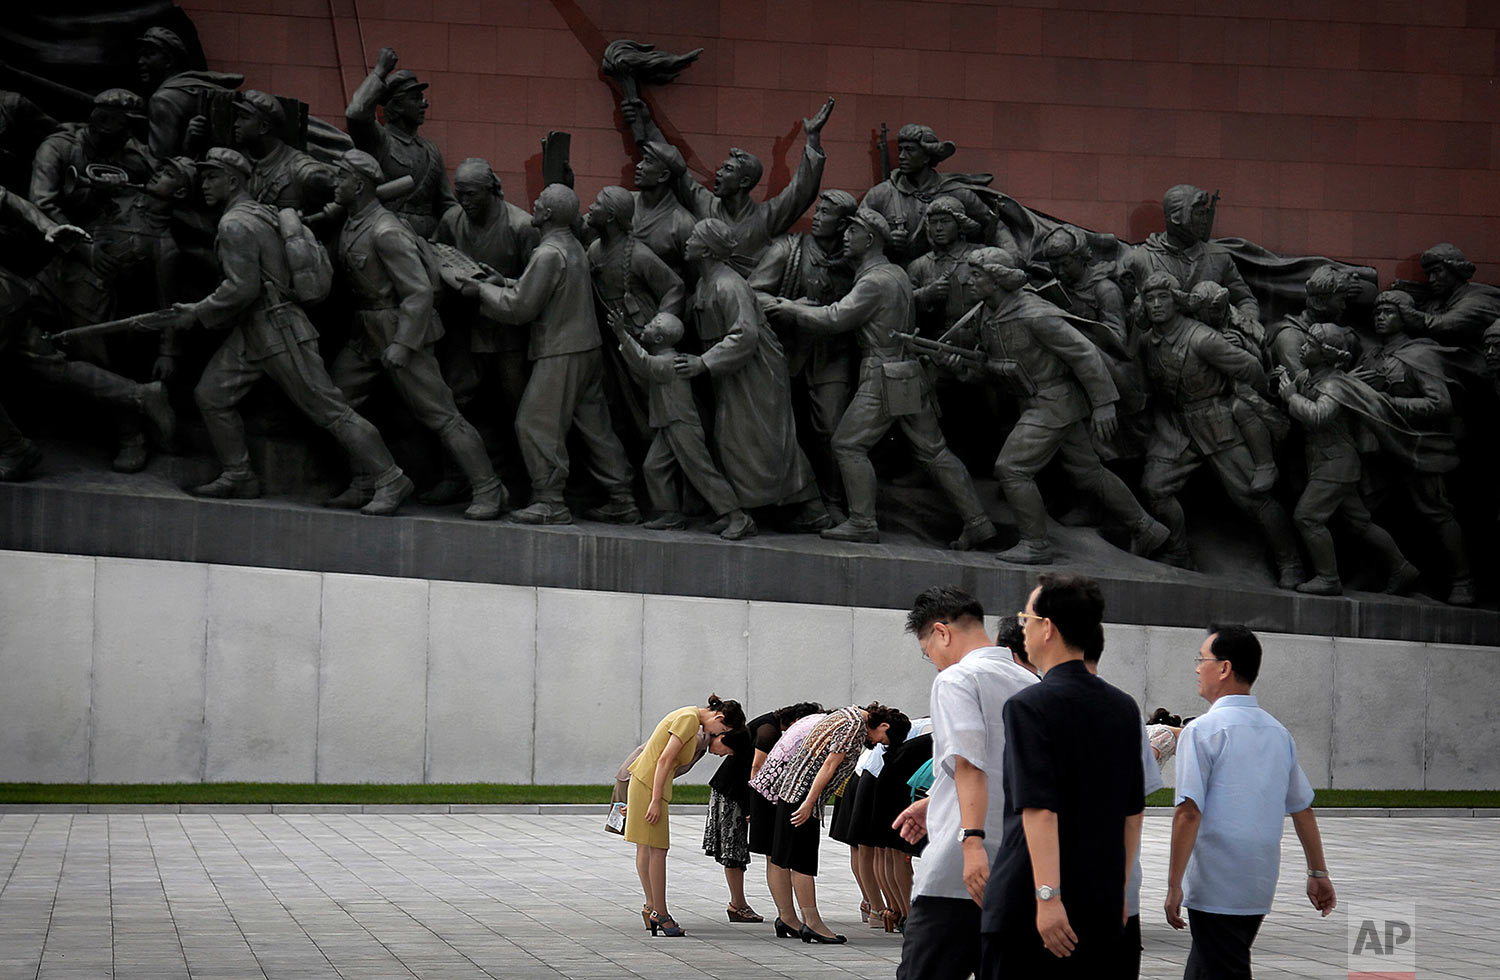 A group of women bow to bronze statues of the late leaders Kim Il Sung and Kim Jong Il at Munsu Hill in Pyongyang, North Korea, on July 27, 2015, amid celebrations to mark the 62nd anniversary of the armistice that halted the Korean War. (AP Photo/Wong Maye-E)